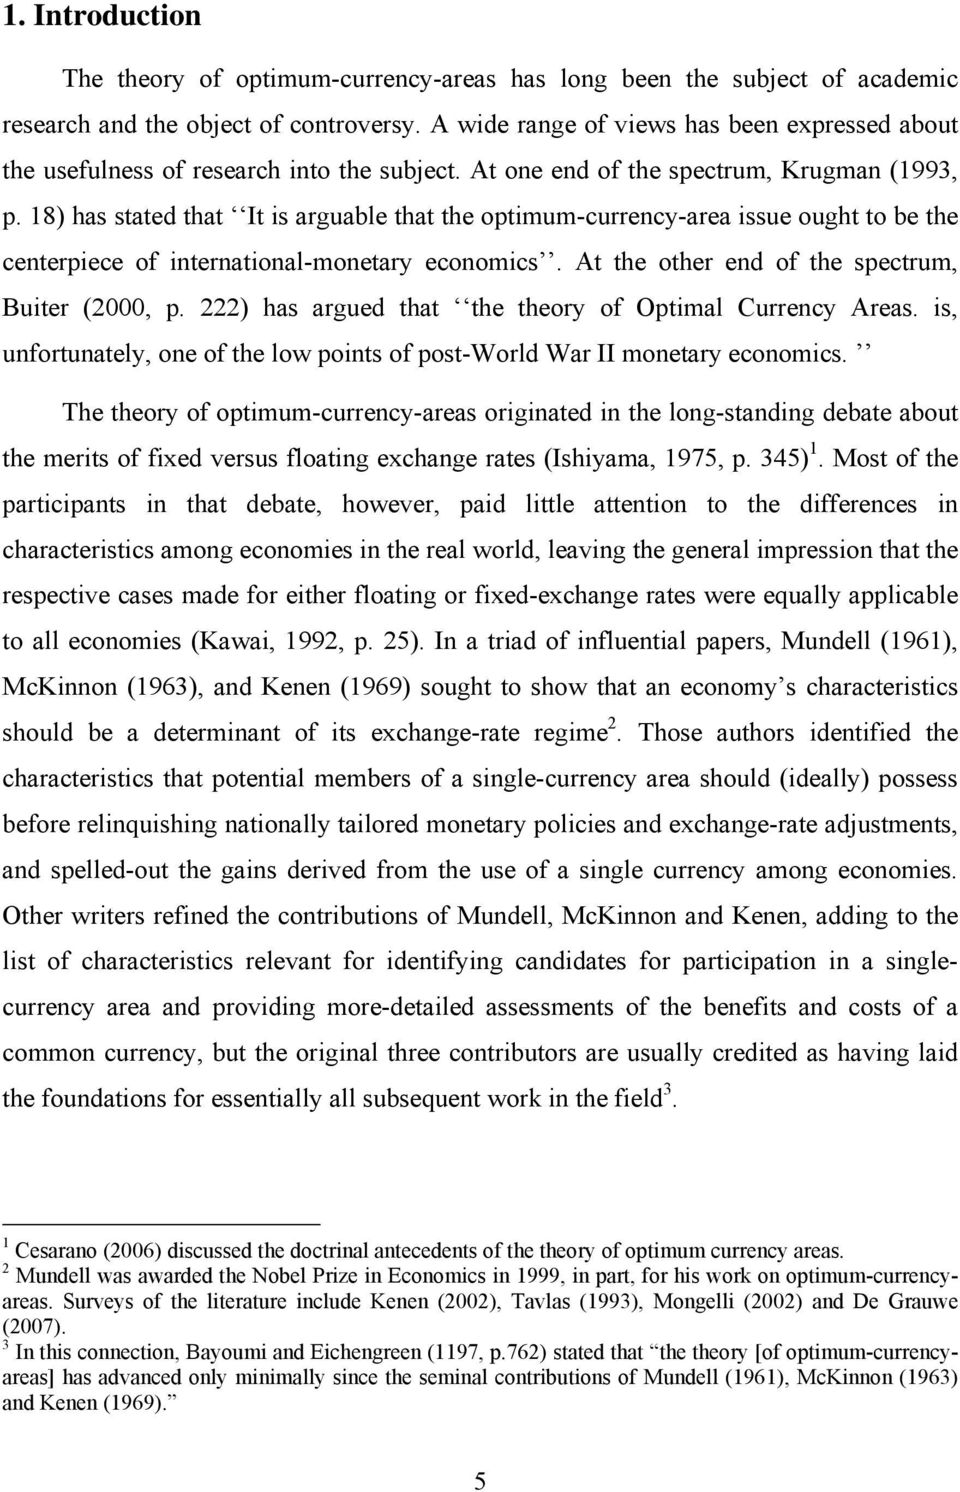 18) has stated that It is arguable that the optimum-currency-area issue ought to be the centerpiece of international-monetary economics. At the other end of the spectrum, Buiter (2000, p.